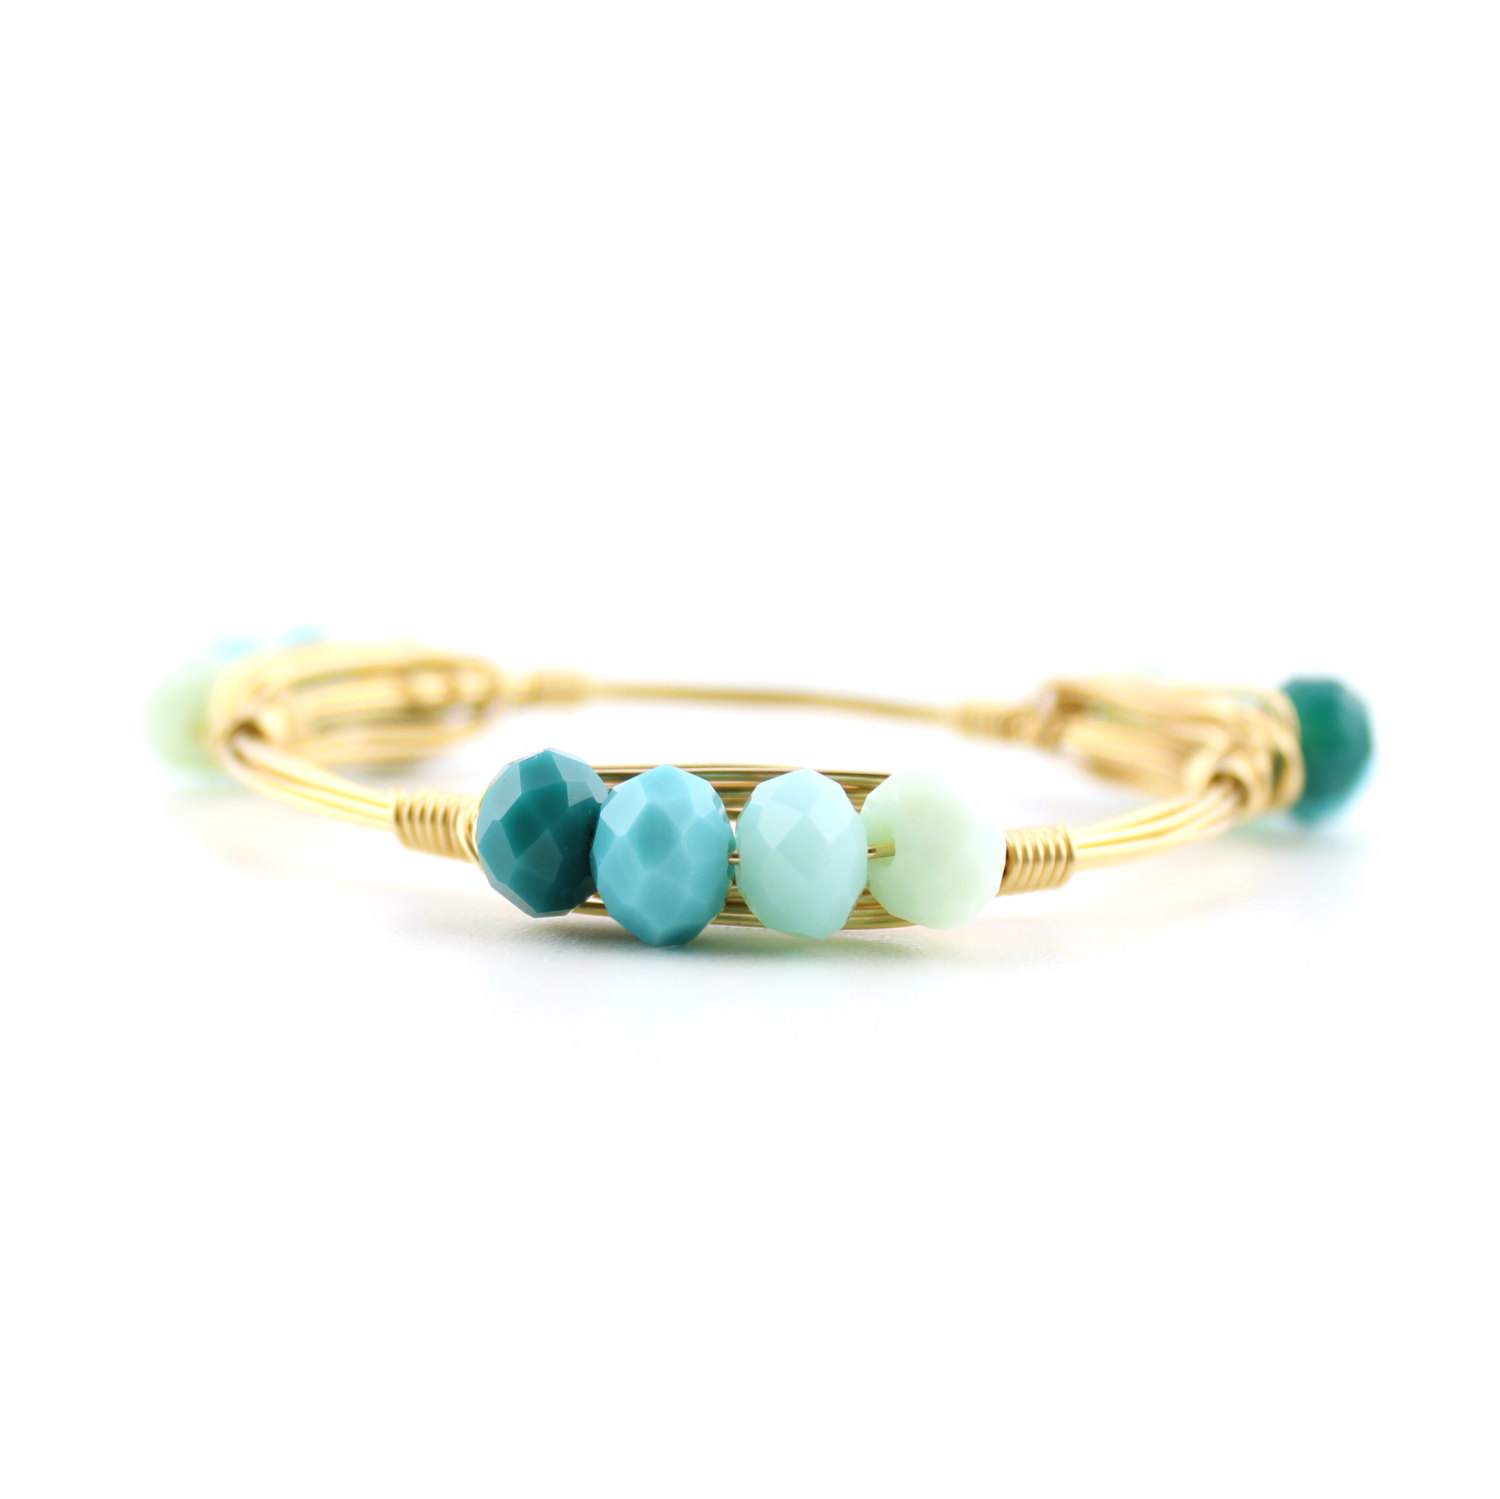 Blue ombre bangle bracelet